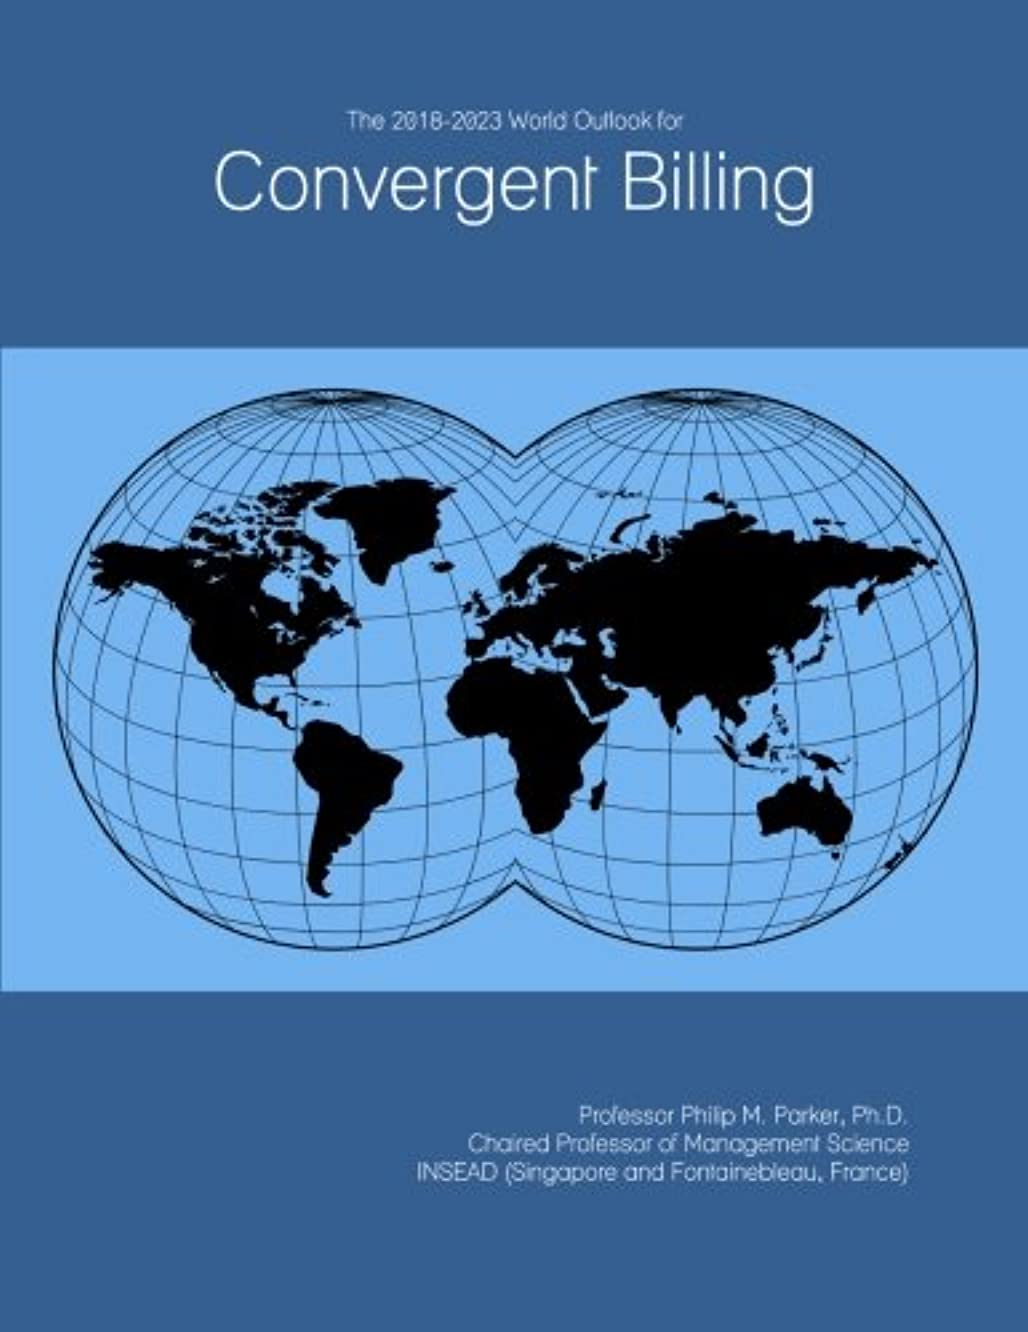 The 2018-2023 World Outlook for Convergent Billing